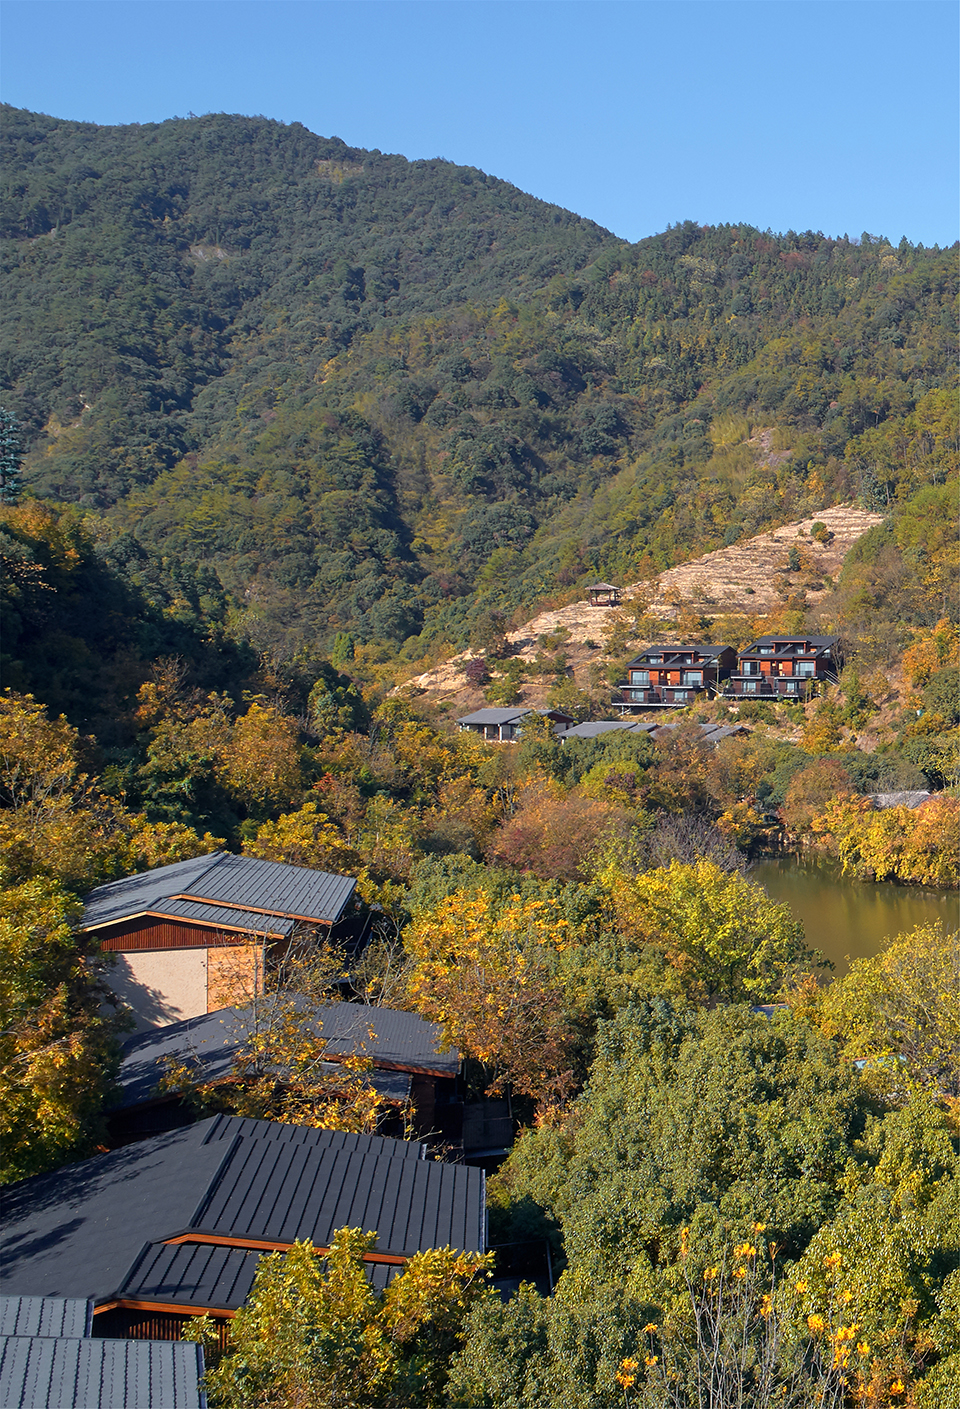 019-fuchun-mountain-resort-china-by-the-design-institute-of-landscape-architecture-china-academy-of-art.jpg